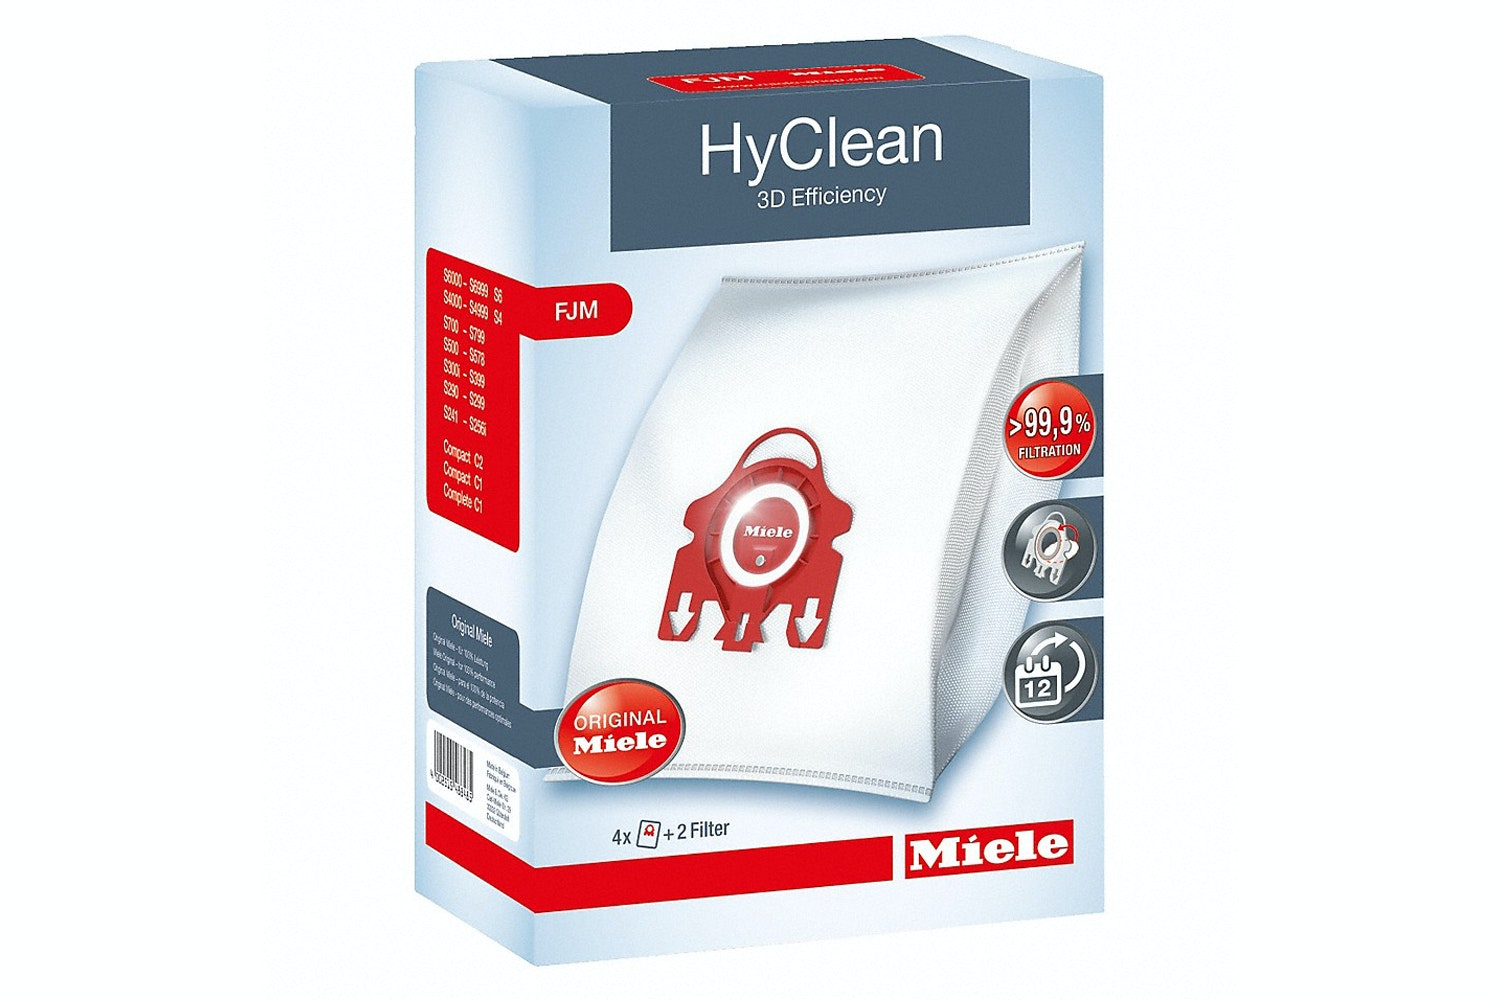 FJM HyClean 3D  HyClean 3D Efficiency FJM dustbags   ensure that dust picked up stays inside the vacuum cleaner